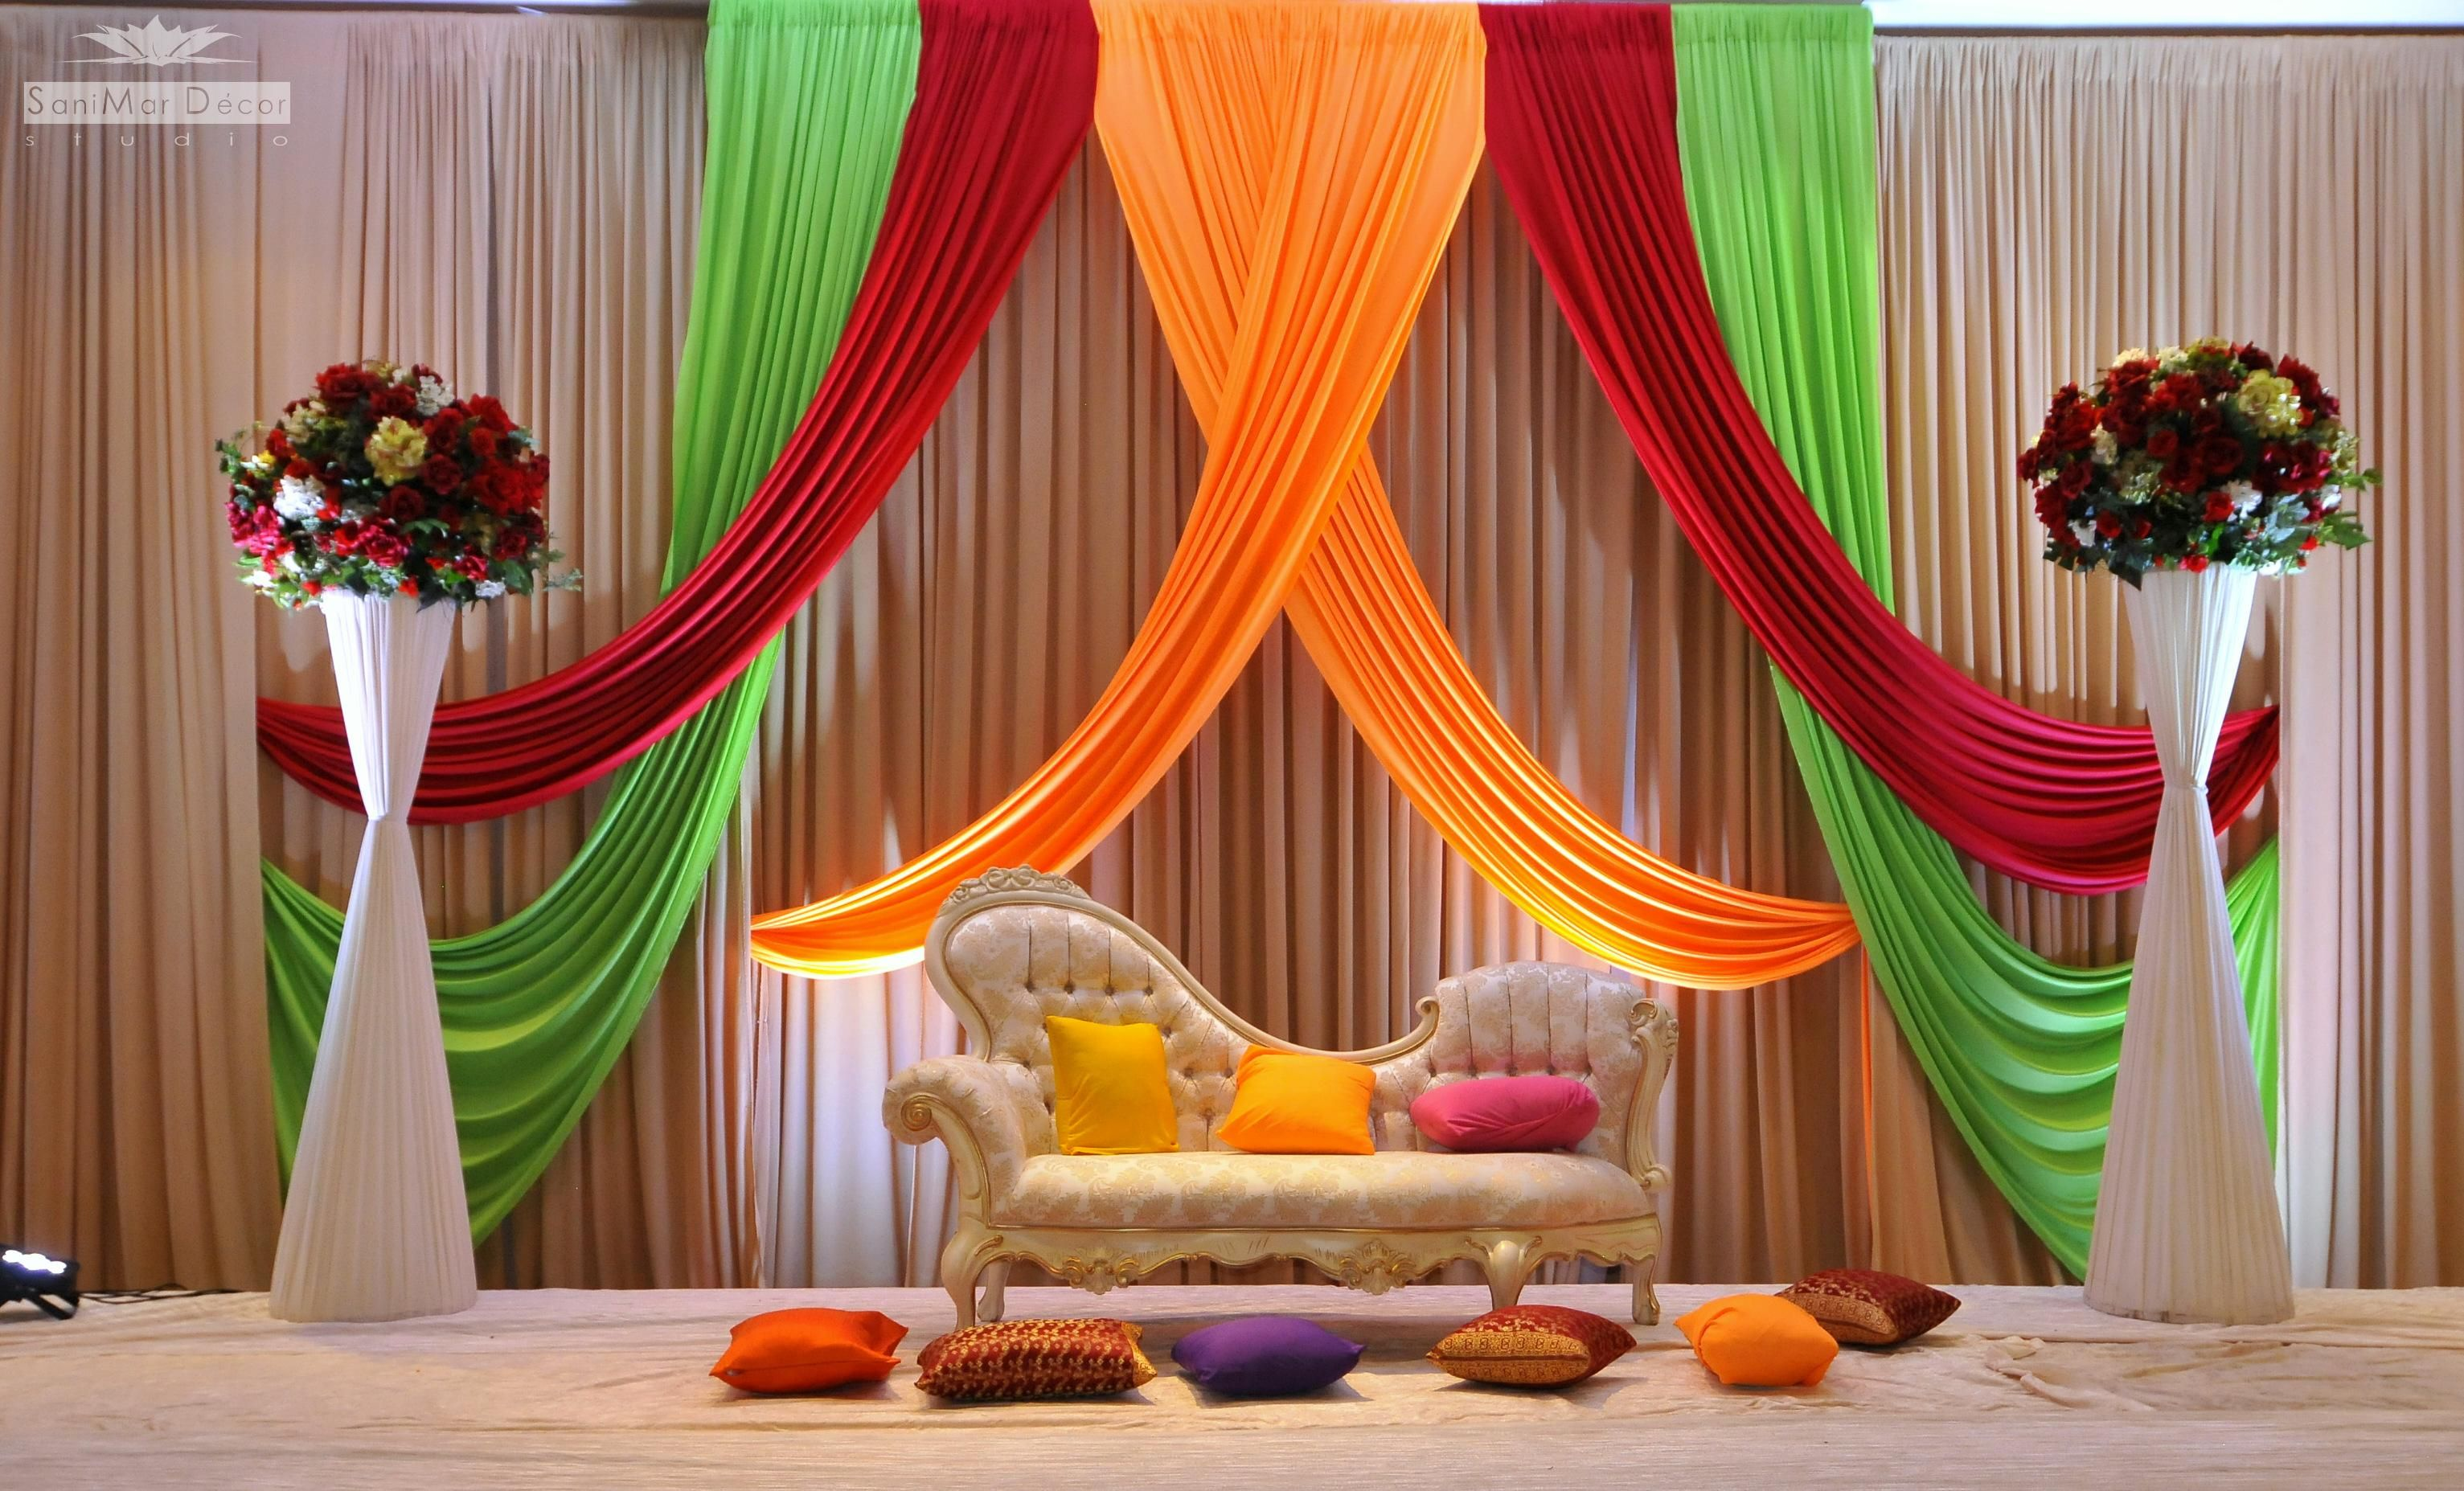 Wedding stage decoration wedding decorations natural for Home decoration photos